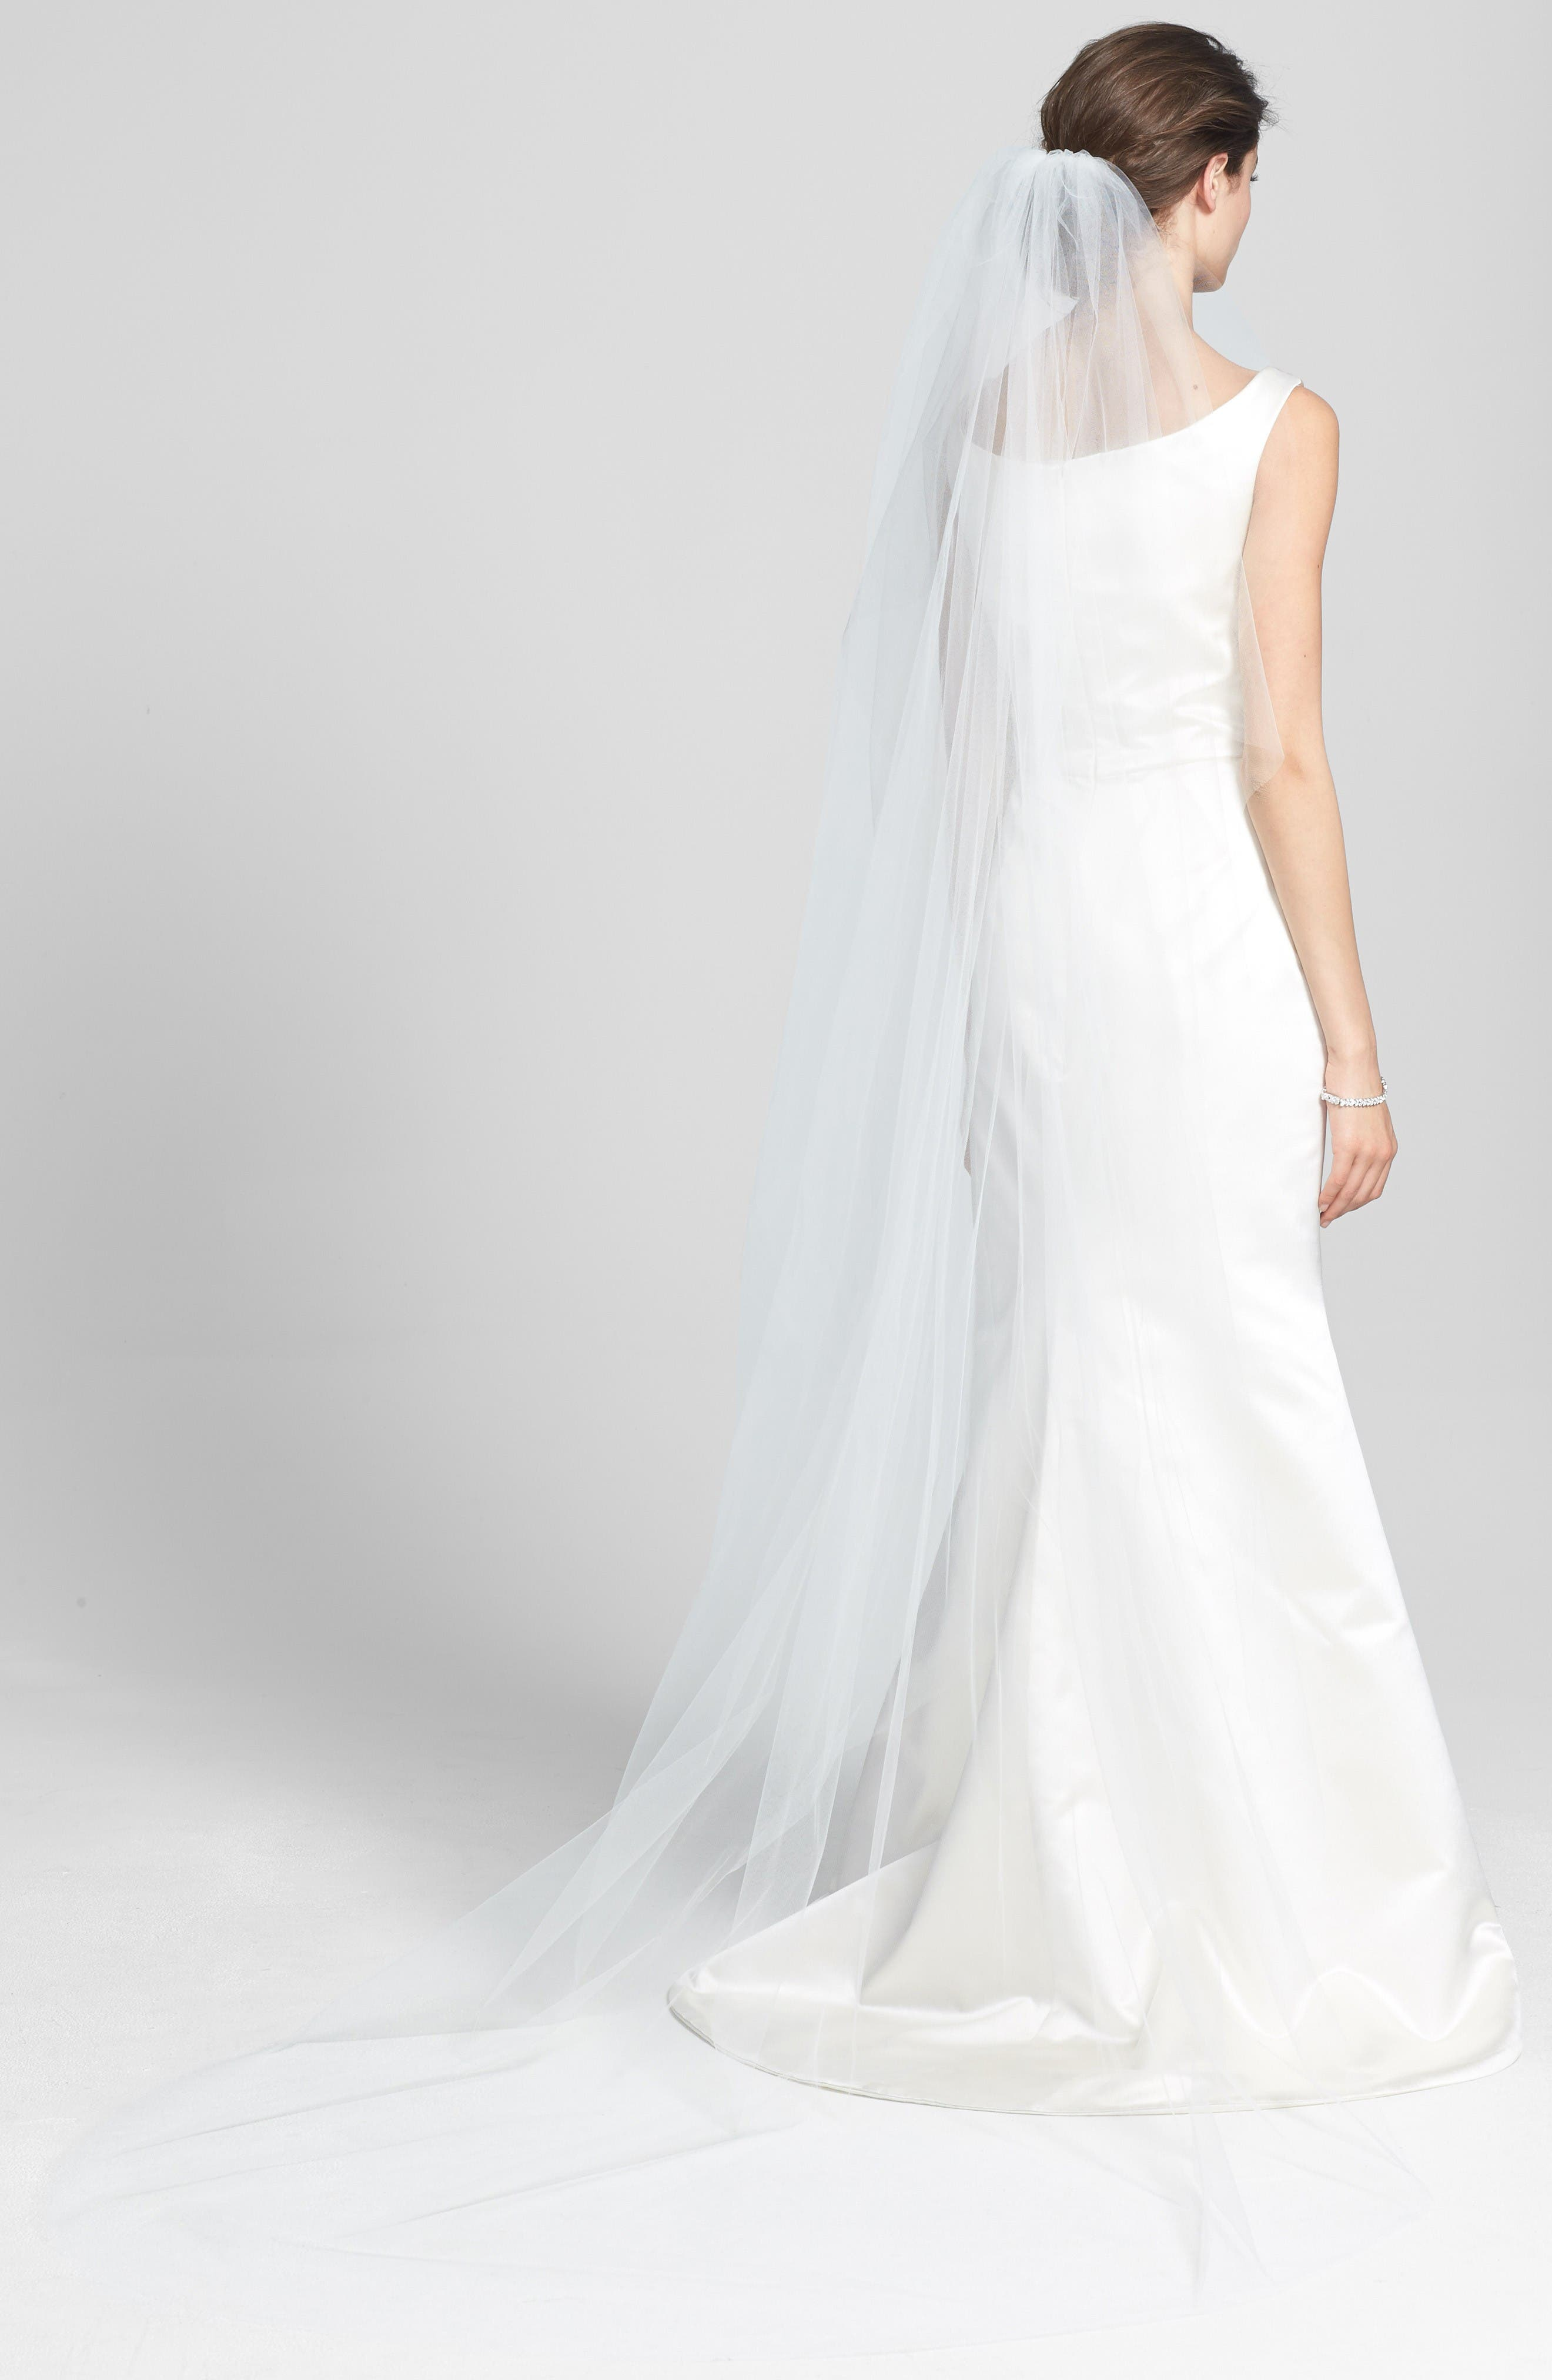 Can I wear a traditional wedding gown with a train on my second wedding dress?. Yes you can. But some etiquette experts say that second time brides usually shouldn't wear an .